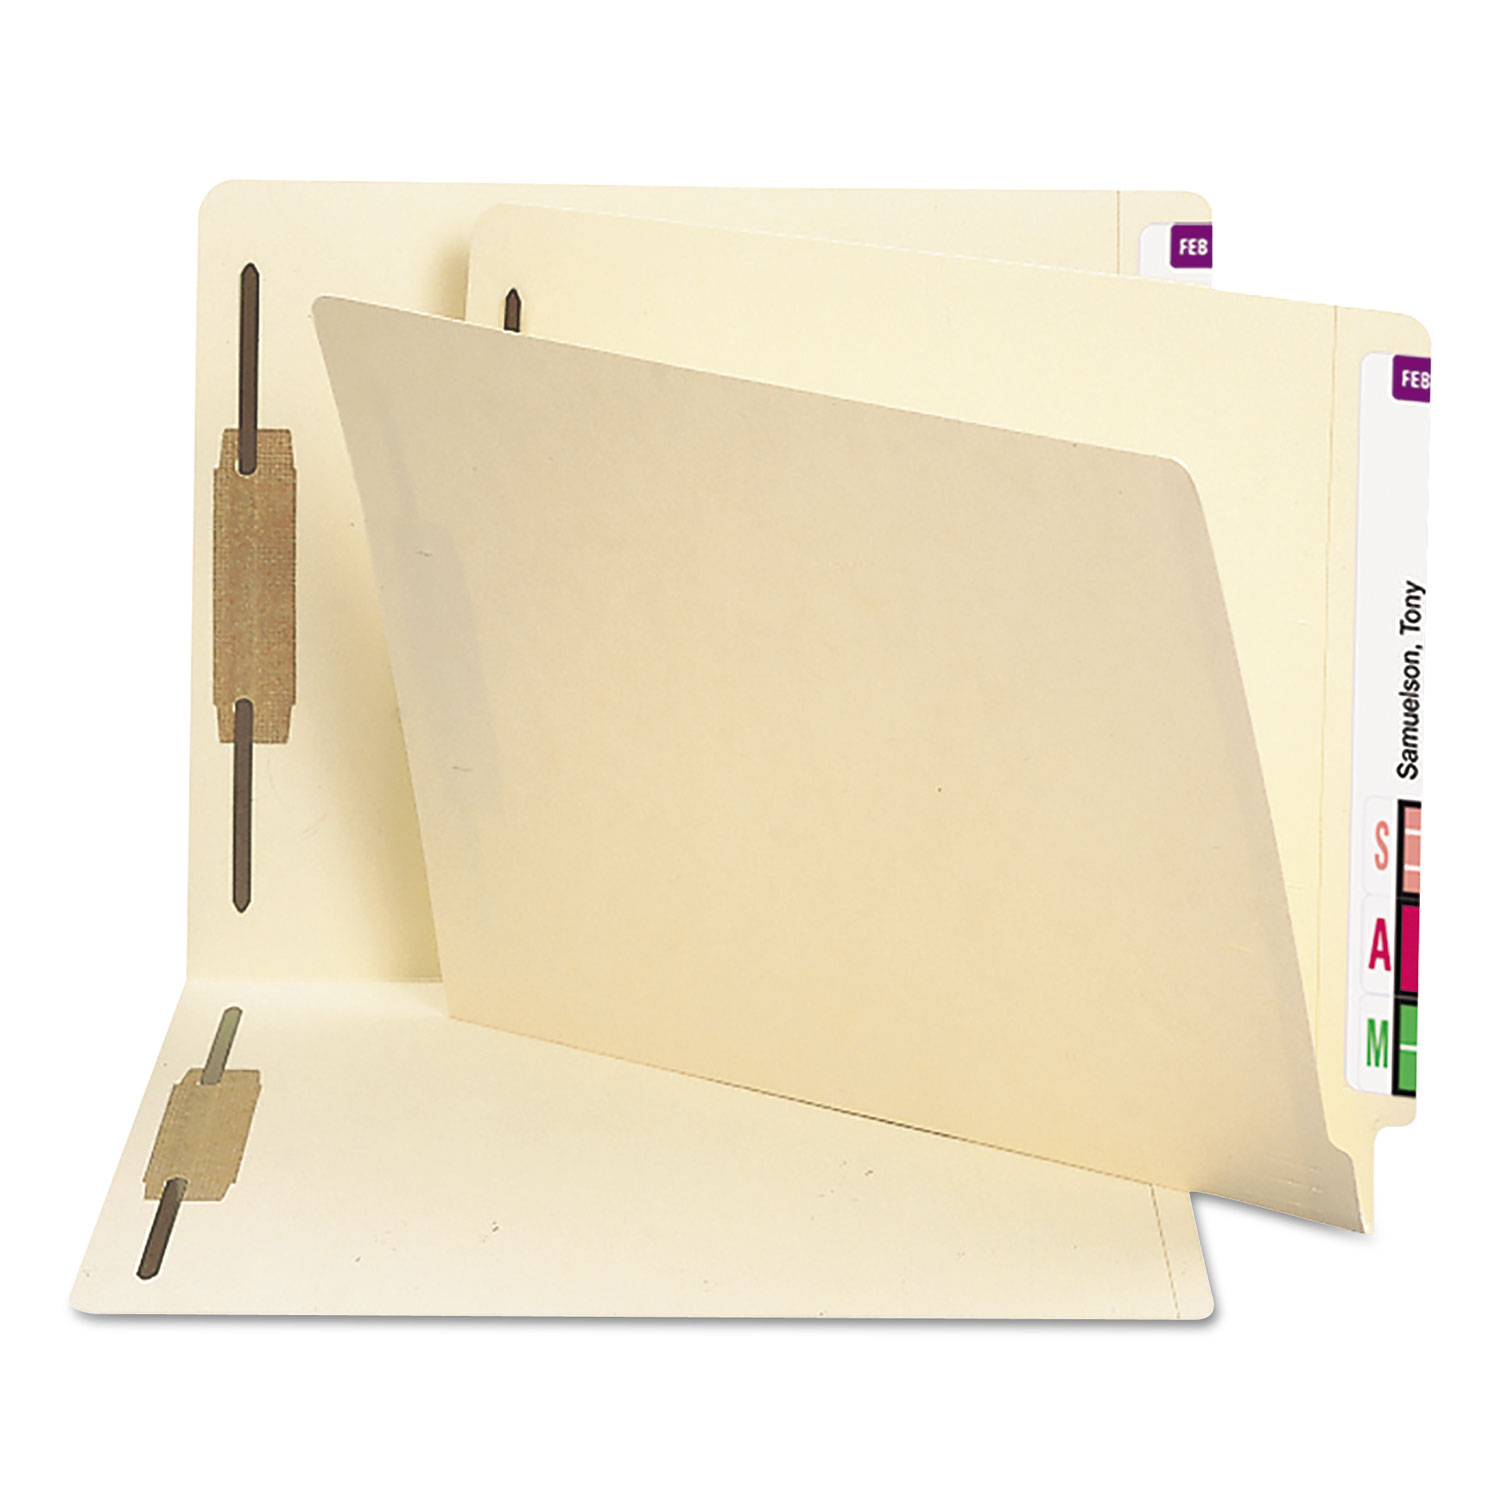 "Manila End Tab 2-Fastener Folders with Reinforced Tabs, 0.75"" Expansion, Straight Tab, Letter Size, 11 pt. Manila, 250/Box"